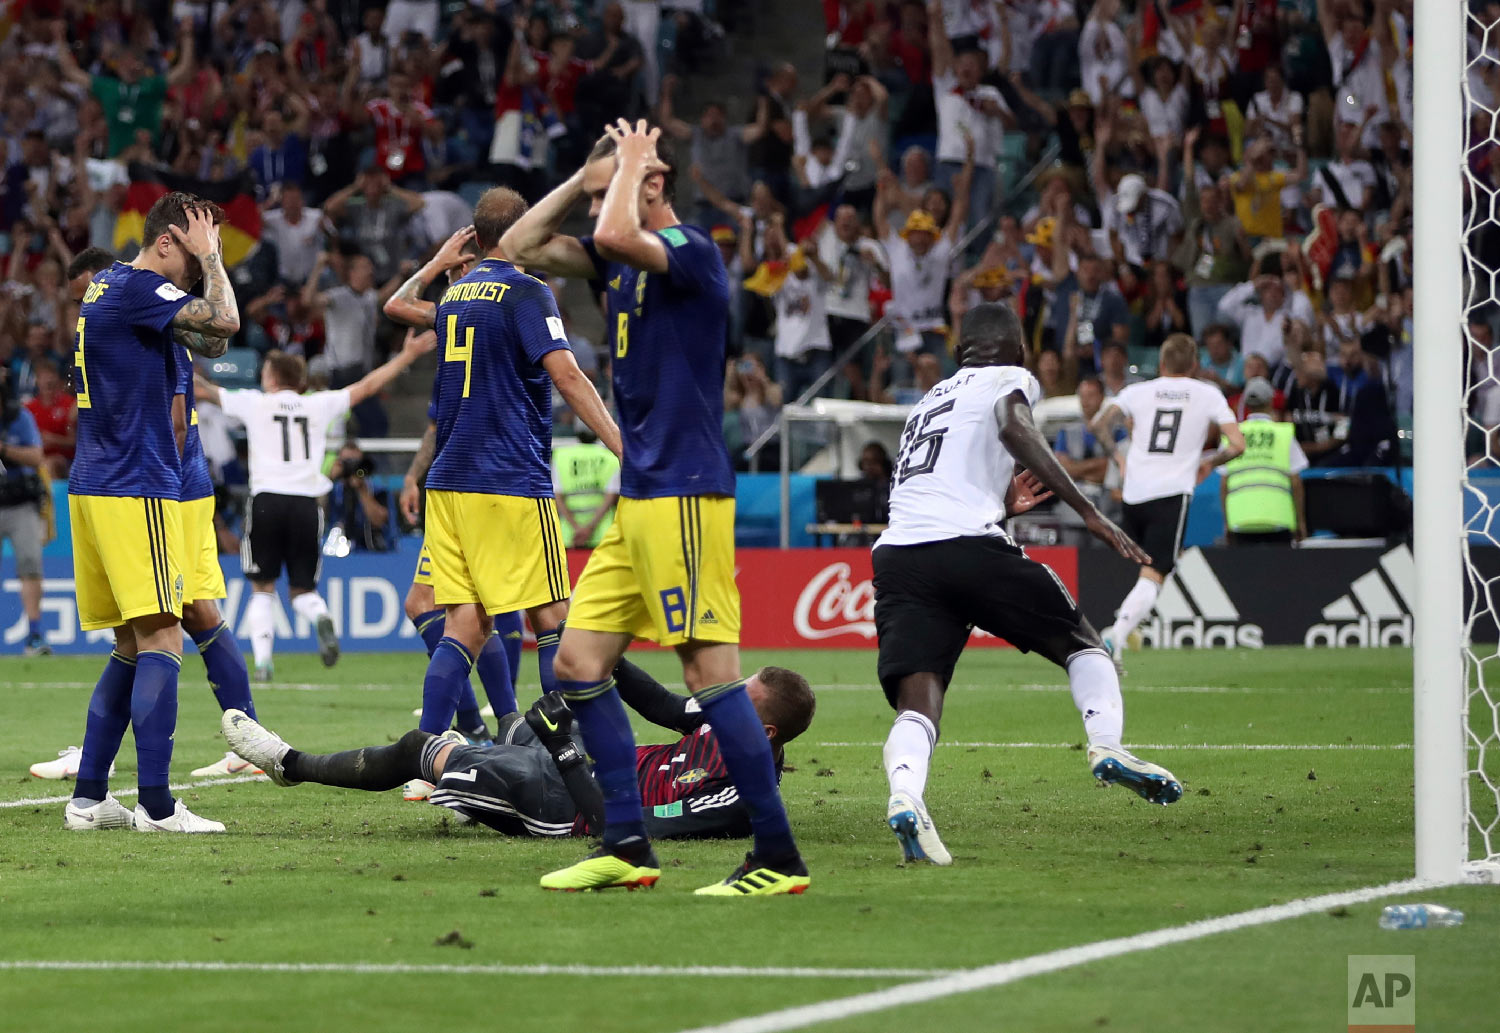 Sweden players reacts after Germany's Toni Kroos, right, scores his side's second goal during the group F match between Germany and Sweden at the 2018 soccer World Cup in the Fisht Stadium in Sochi, Russia, Saturday, June 23, 2018. (AP Photo/Thanassis Stavrakis)